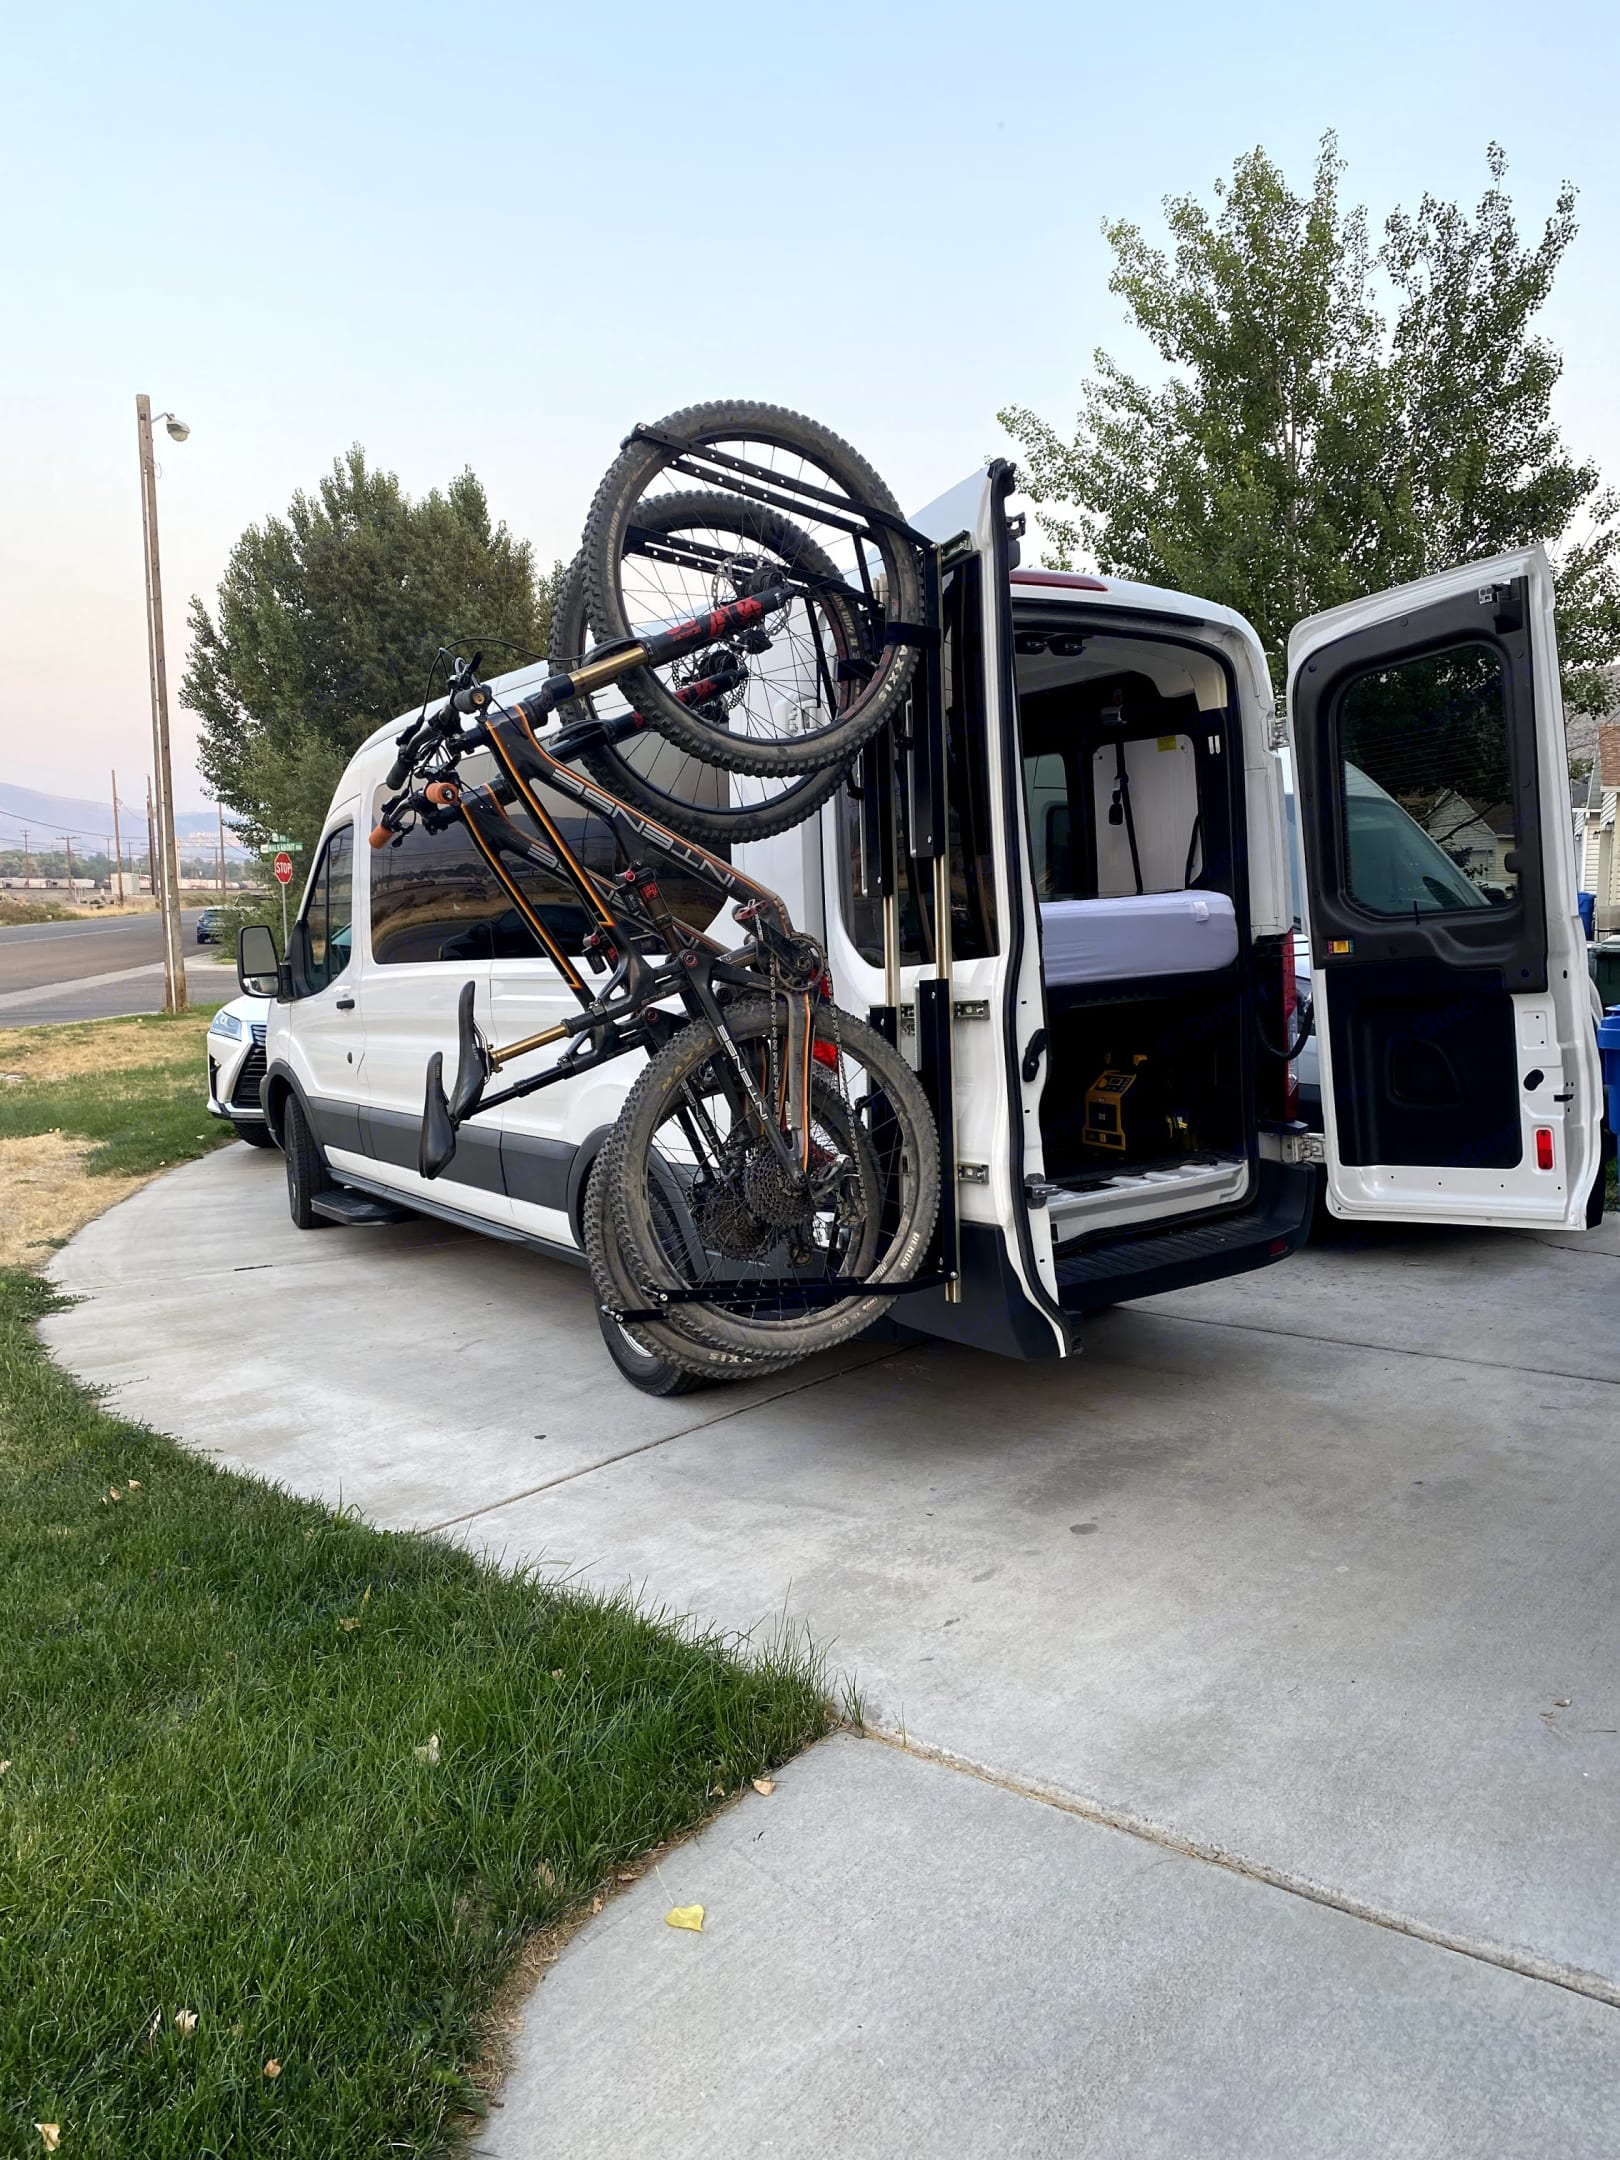 1 up bike rack for 2 bikes swings with the door. Ford Transit 2016